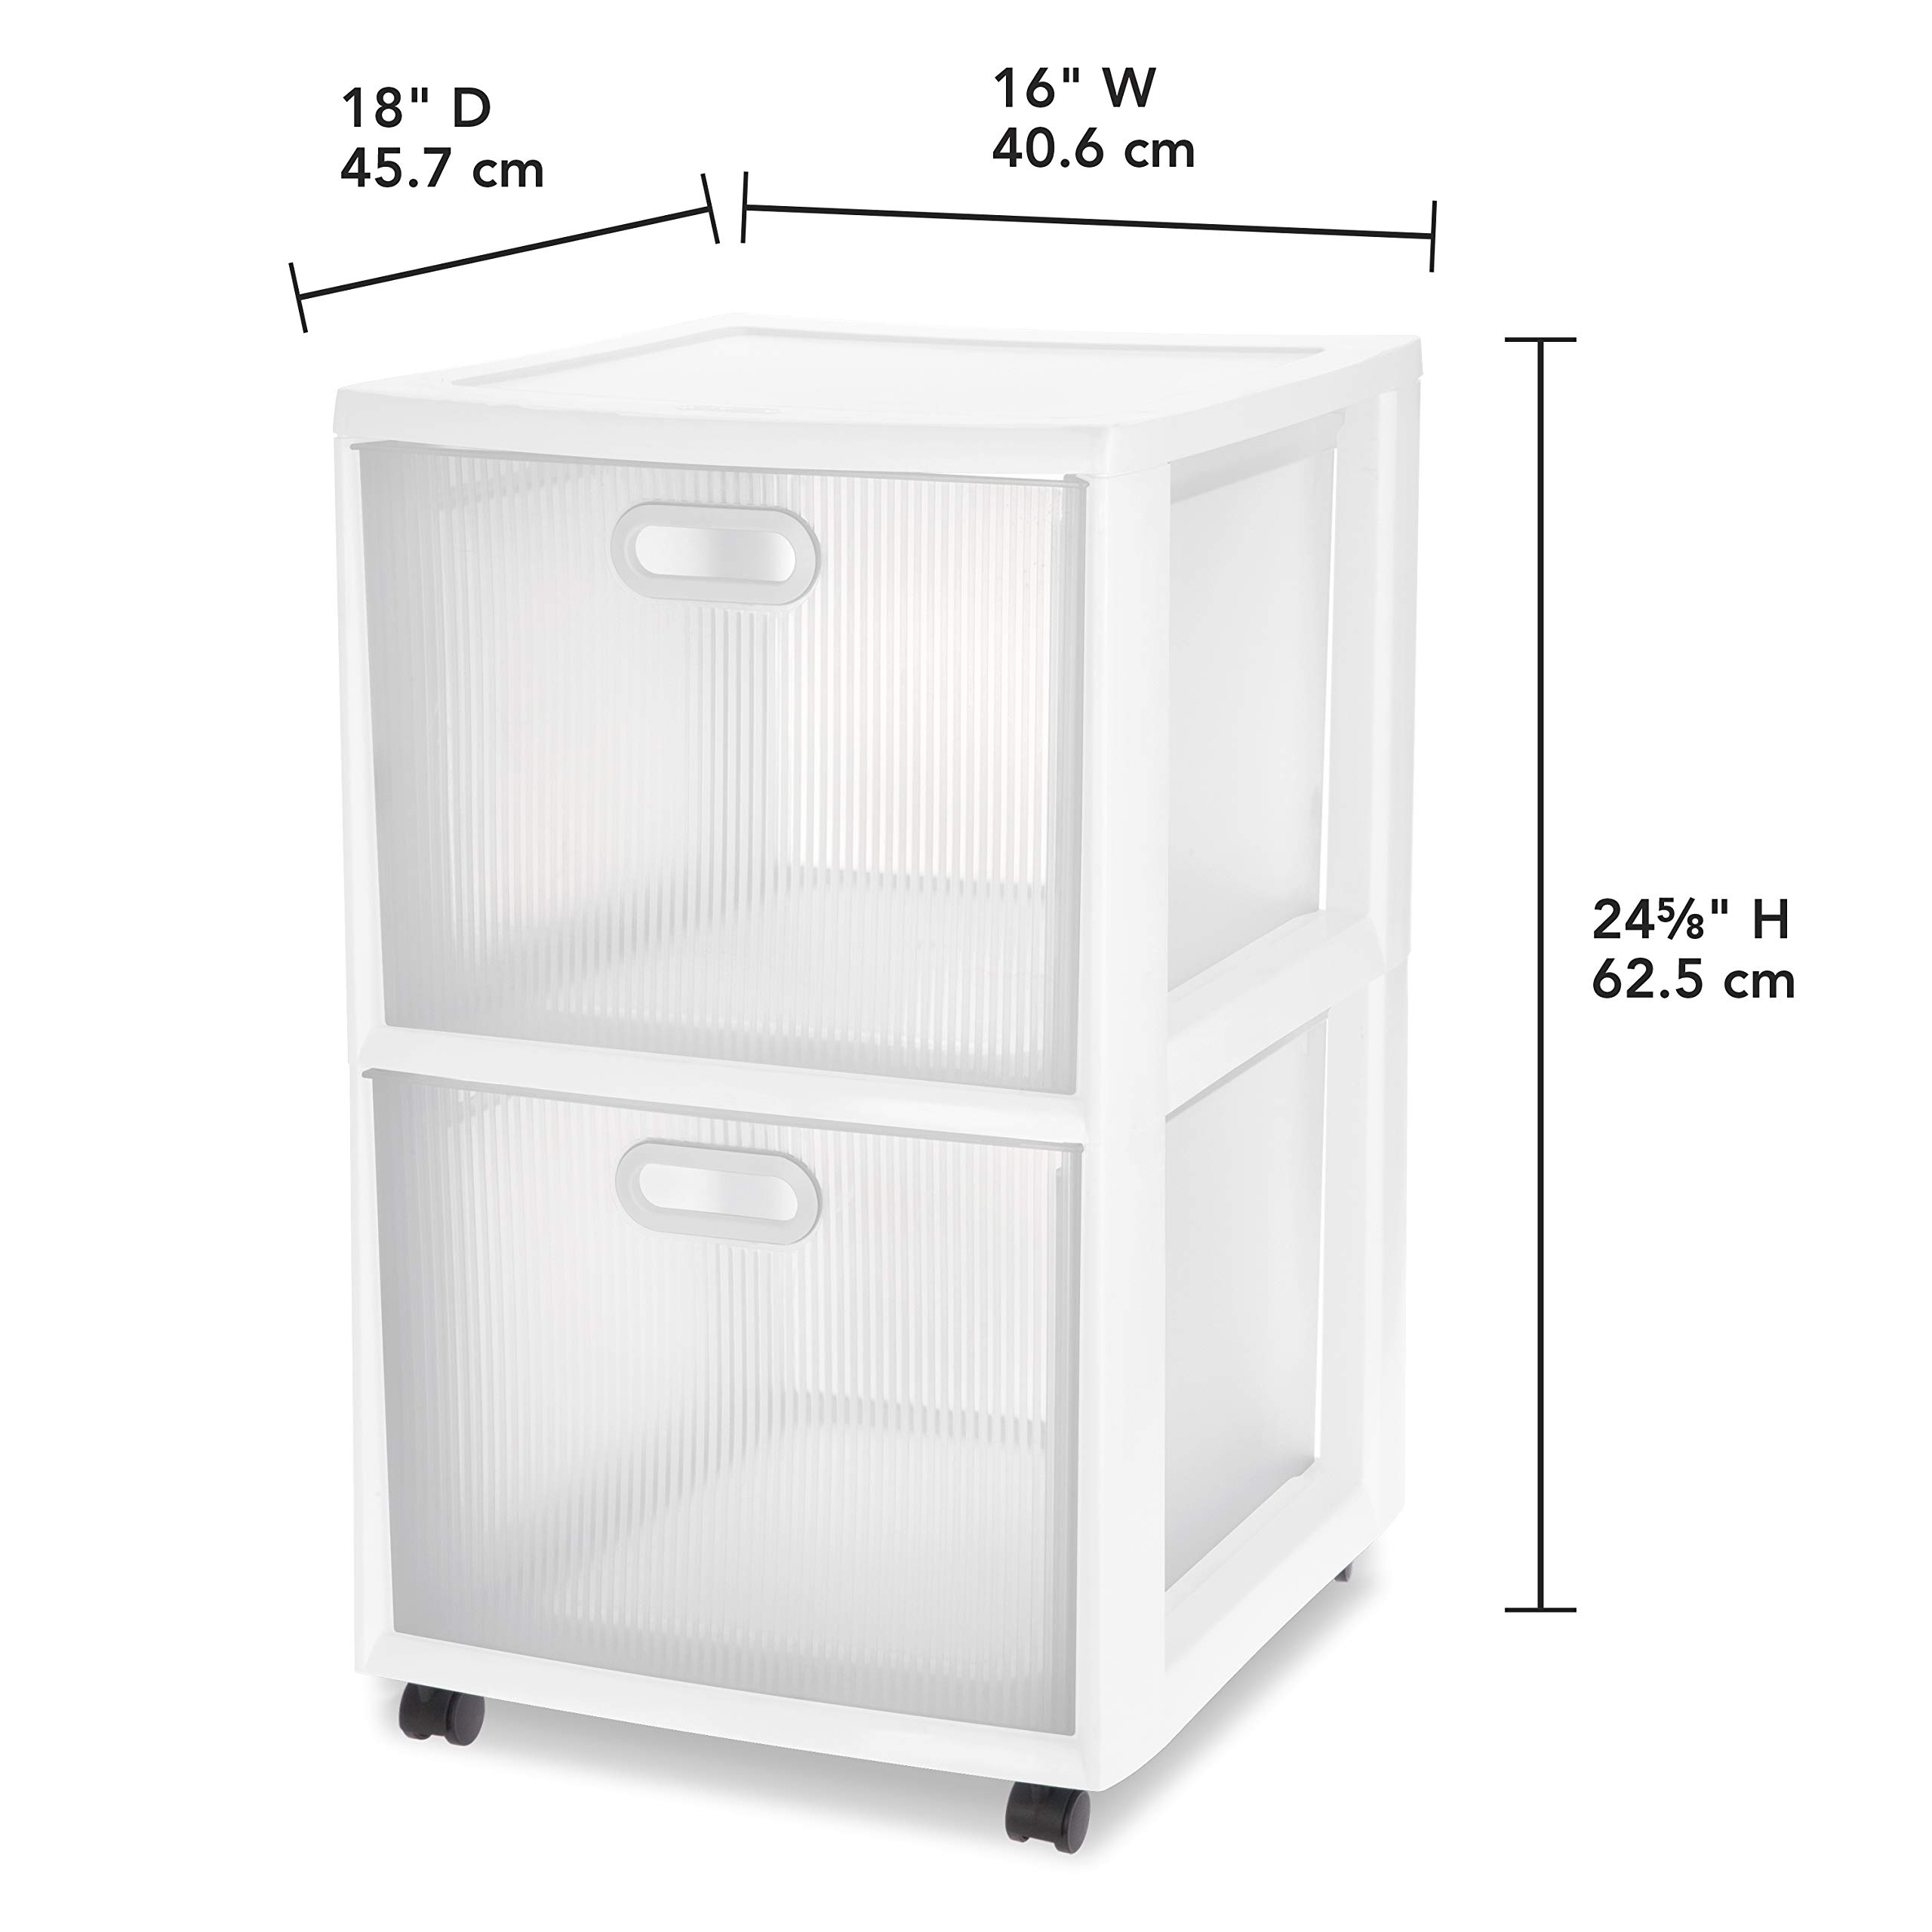 Sterilite 36208002 Ultra 2 Drawer Cart, White Frame & Clear Textured Drawers w/ Handles &  Black Casters, 2-Pack by STERILITE (Image #3)